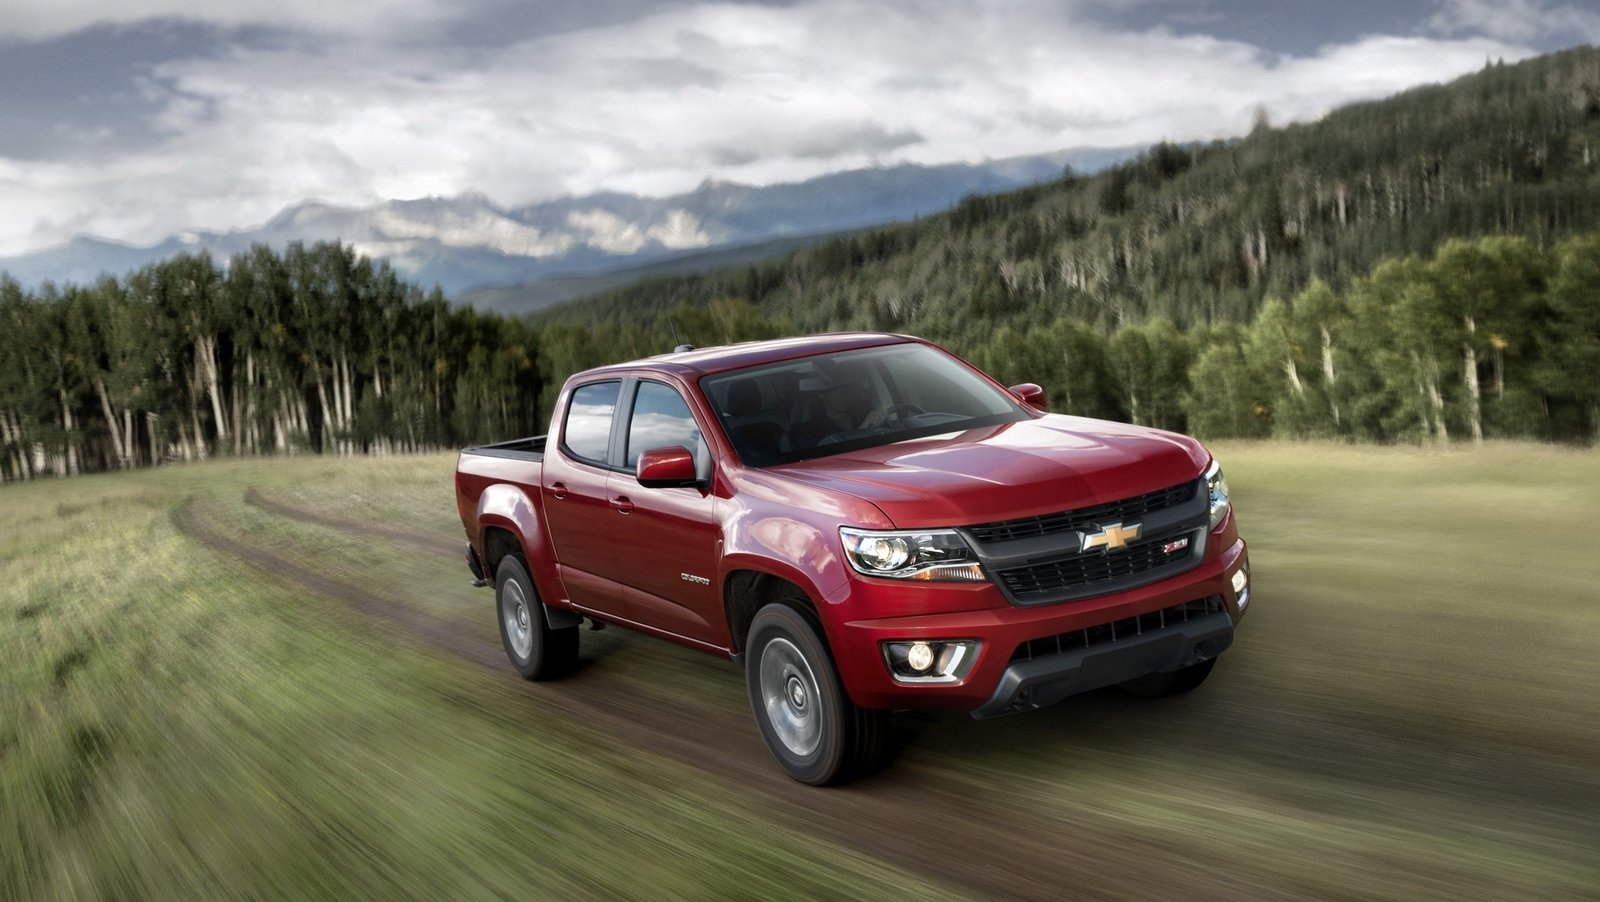 2015 chevrolet colorado crowned motor trend truck of the year news top speed. Black Bedroom Furniture Sets. Home Design Ideas